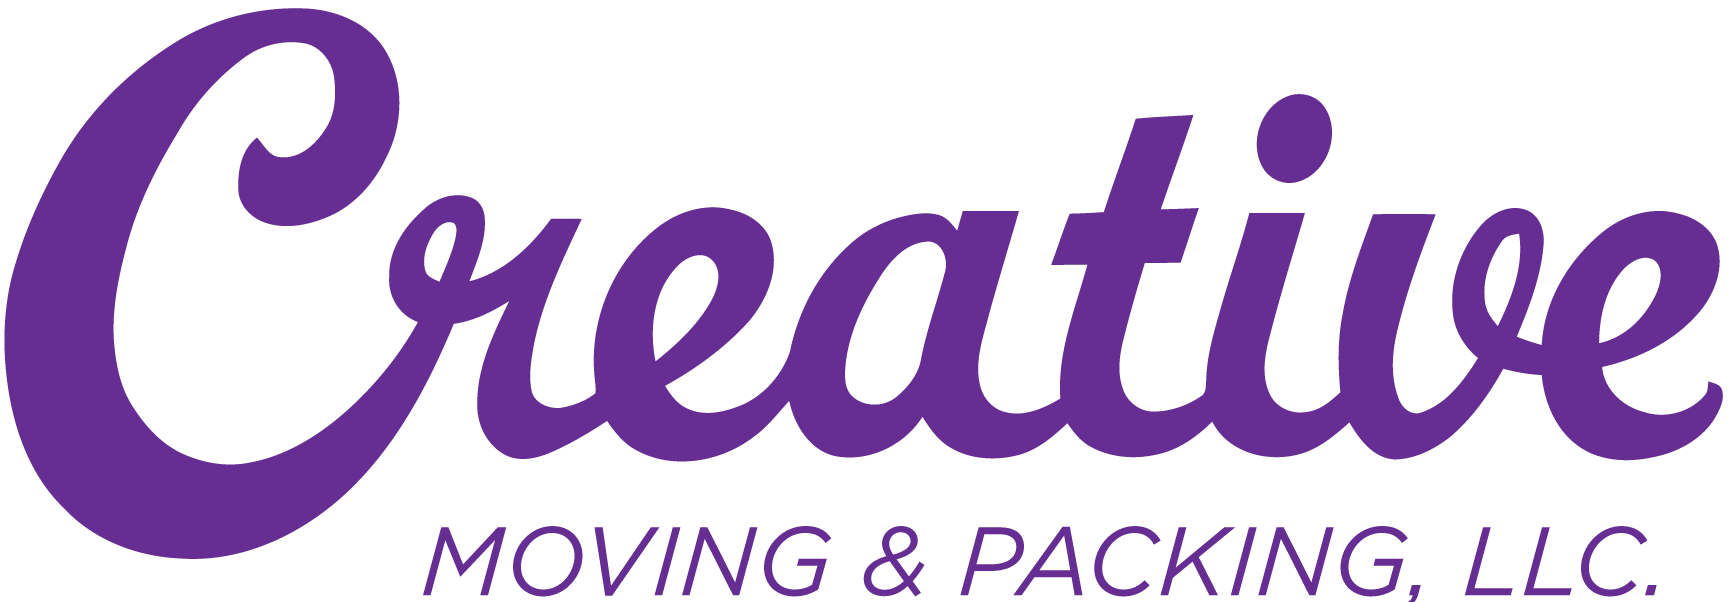 Creative Moving and Packing, LLC Logo